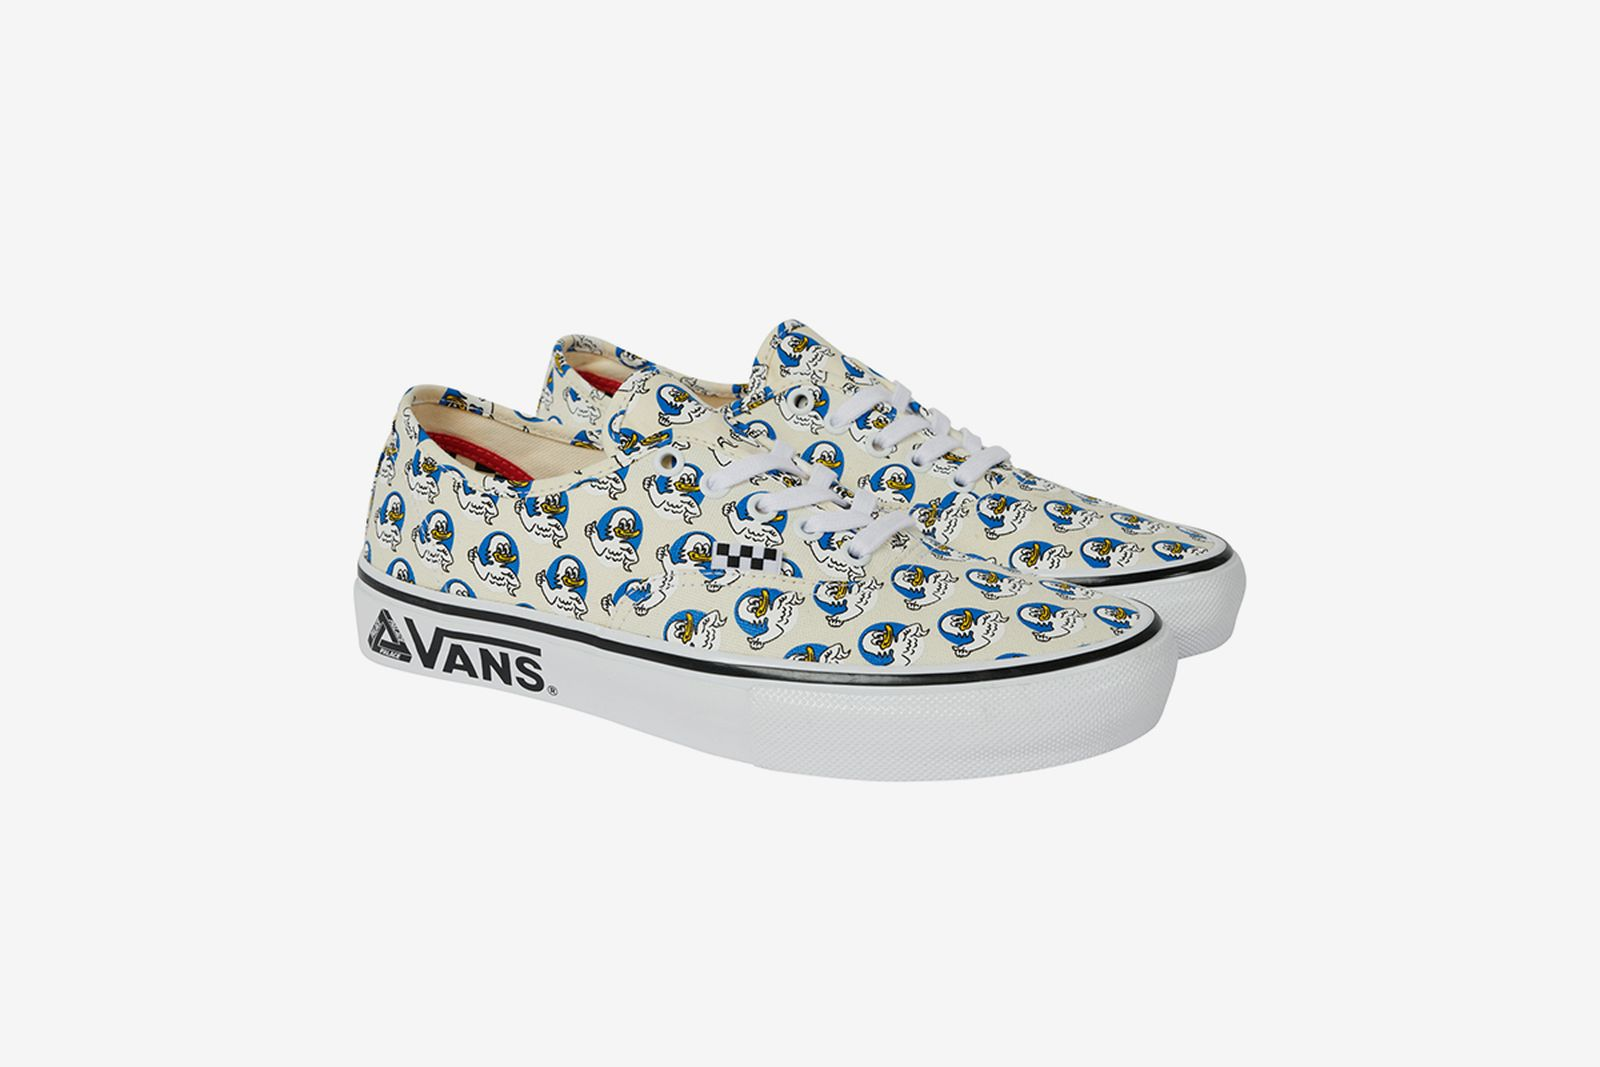 palace-vans-skate-authentic-release-date-price-1-08